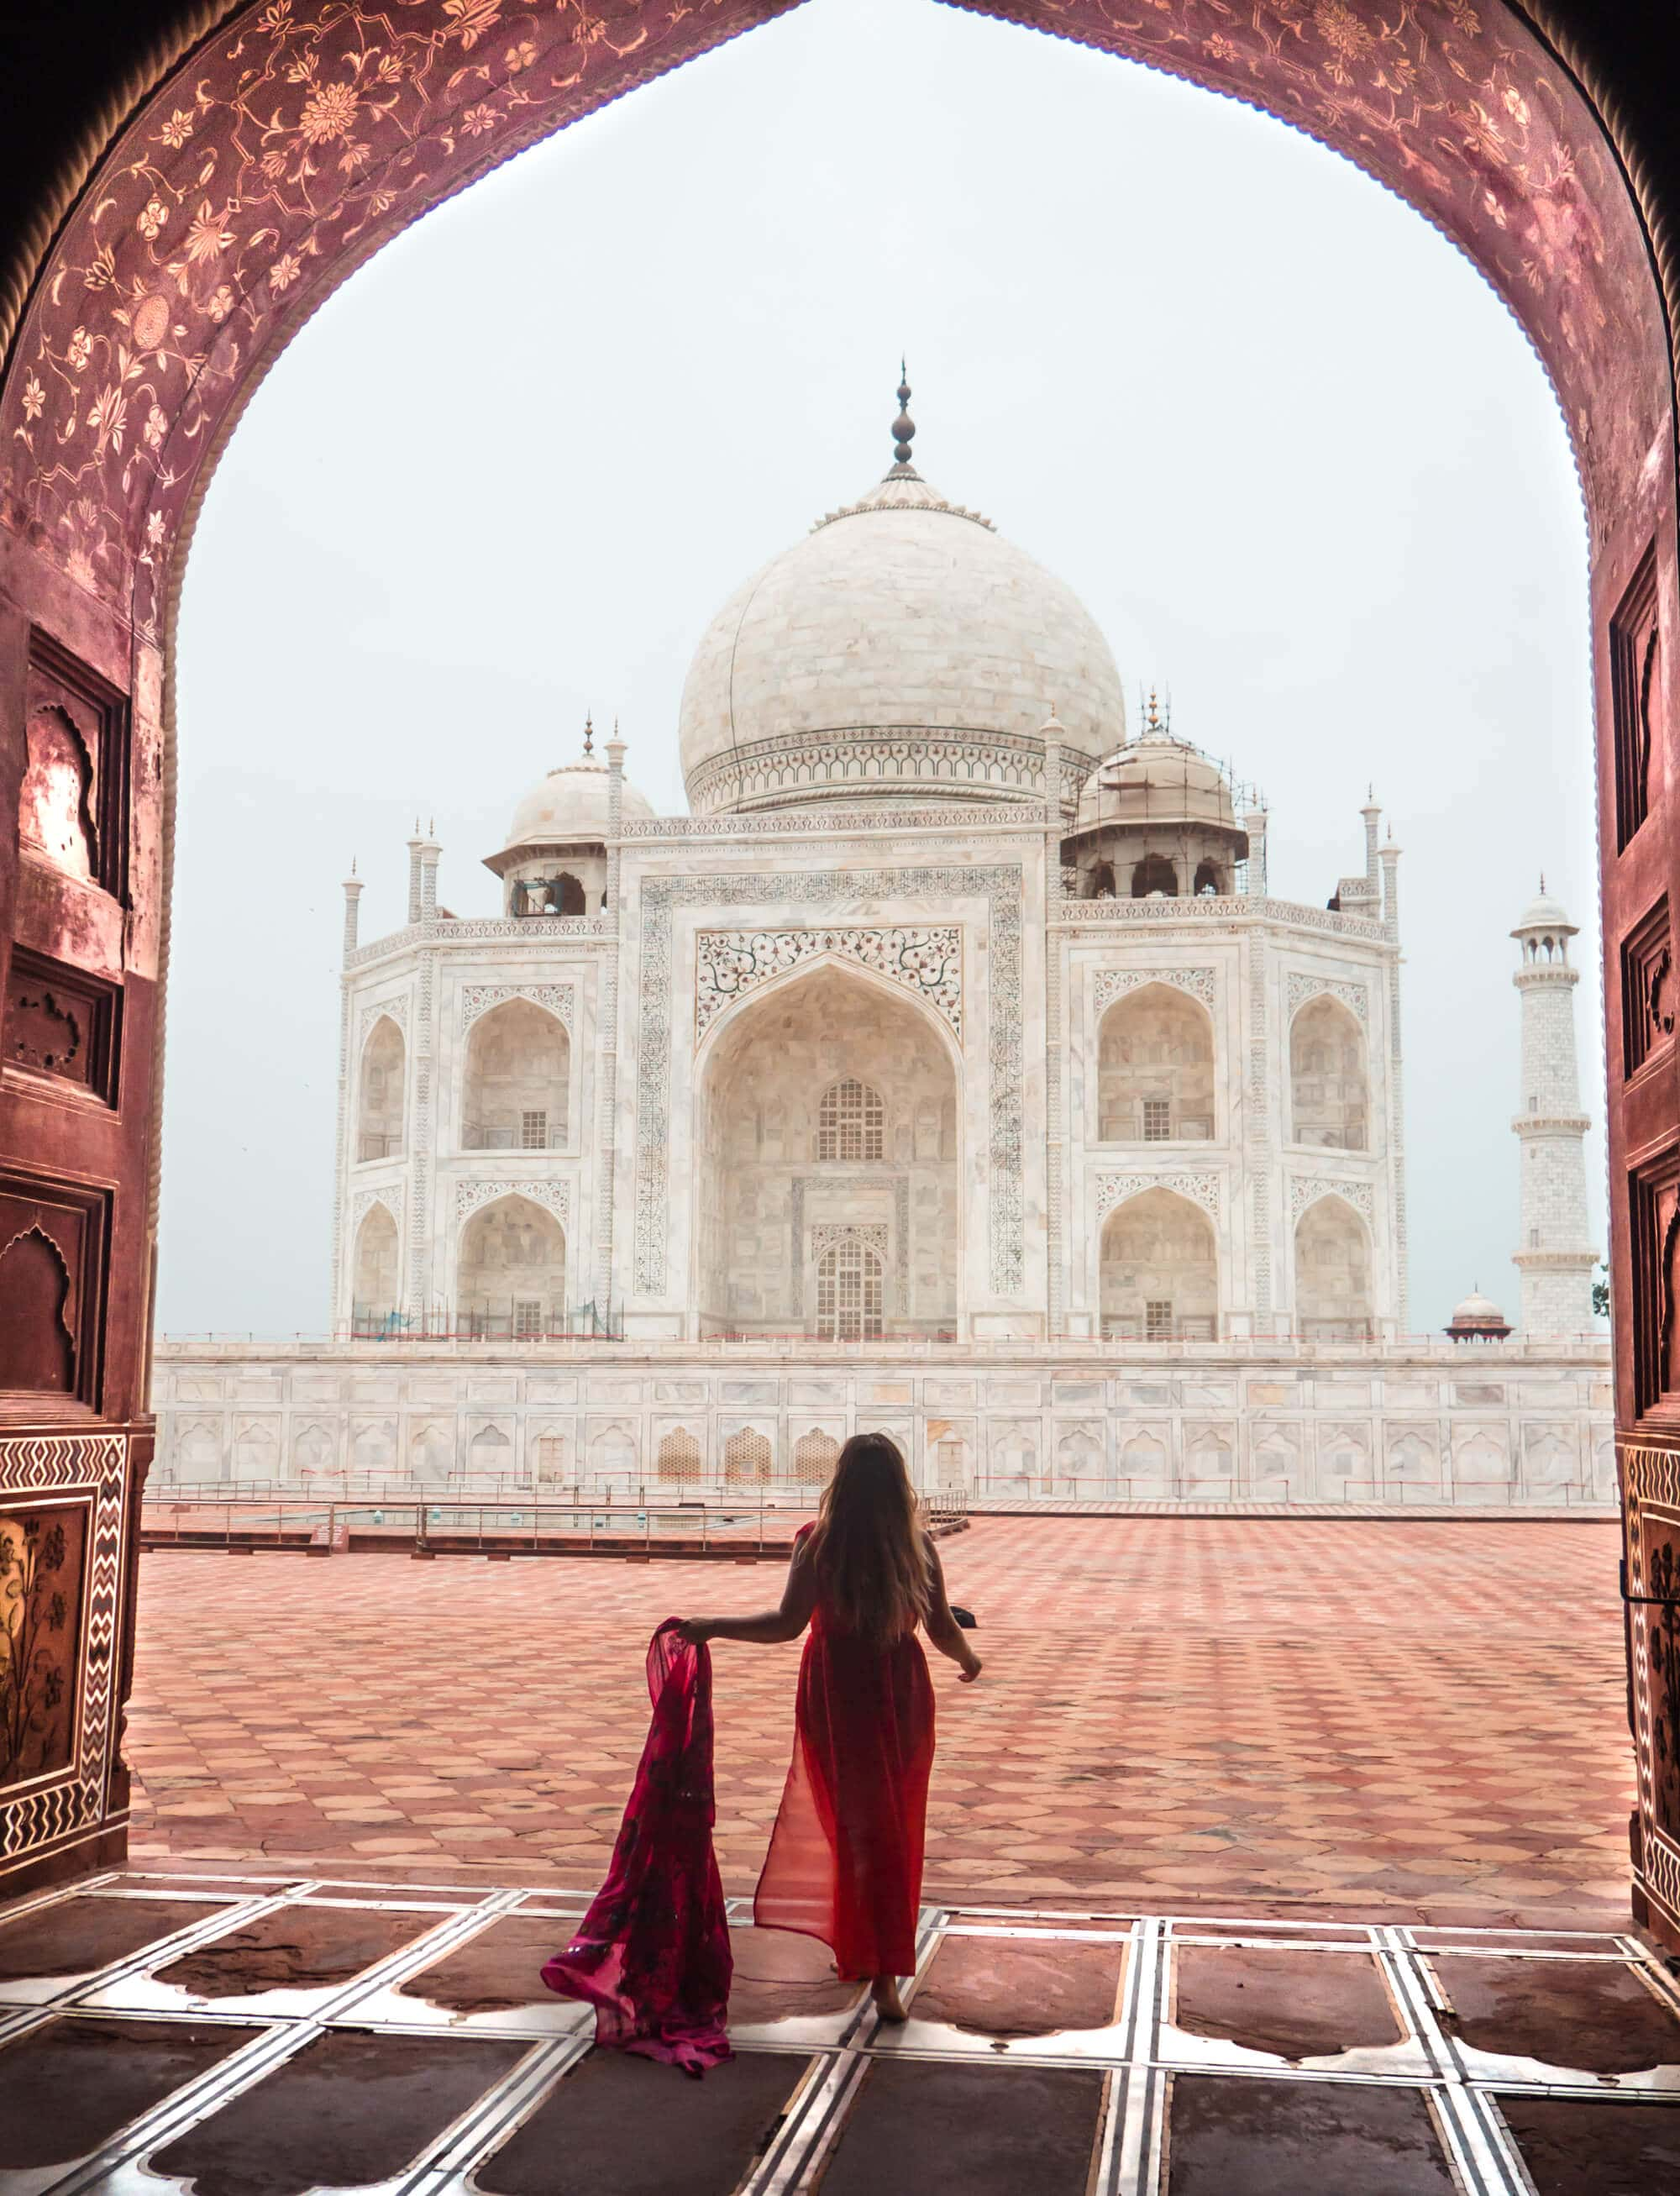 Taj Mahal photography tips - The best view is from the mosque